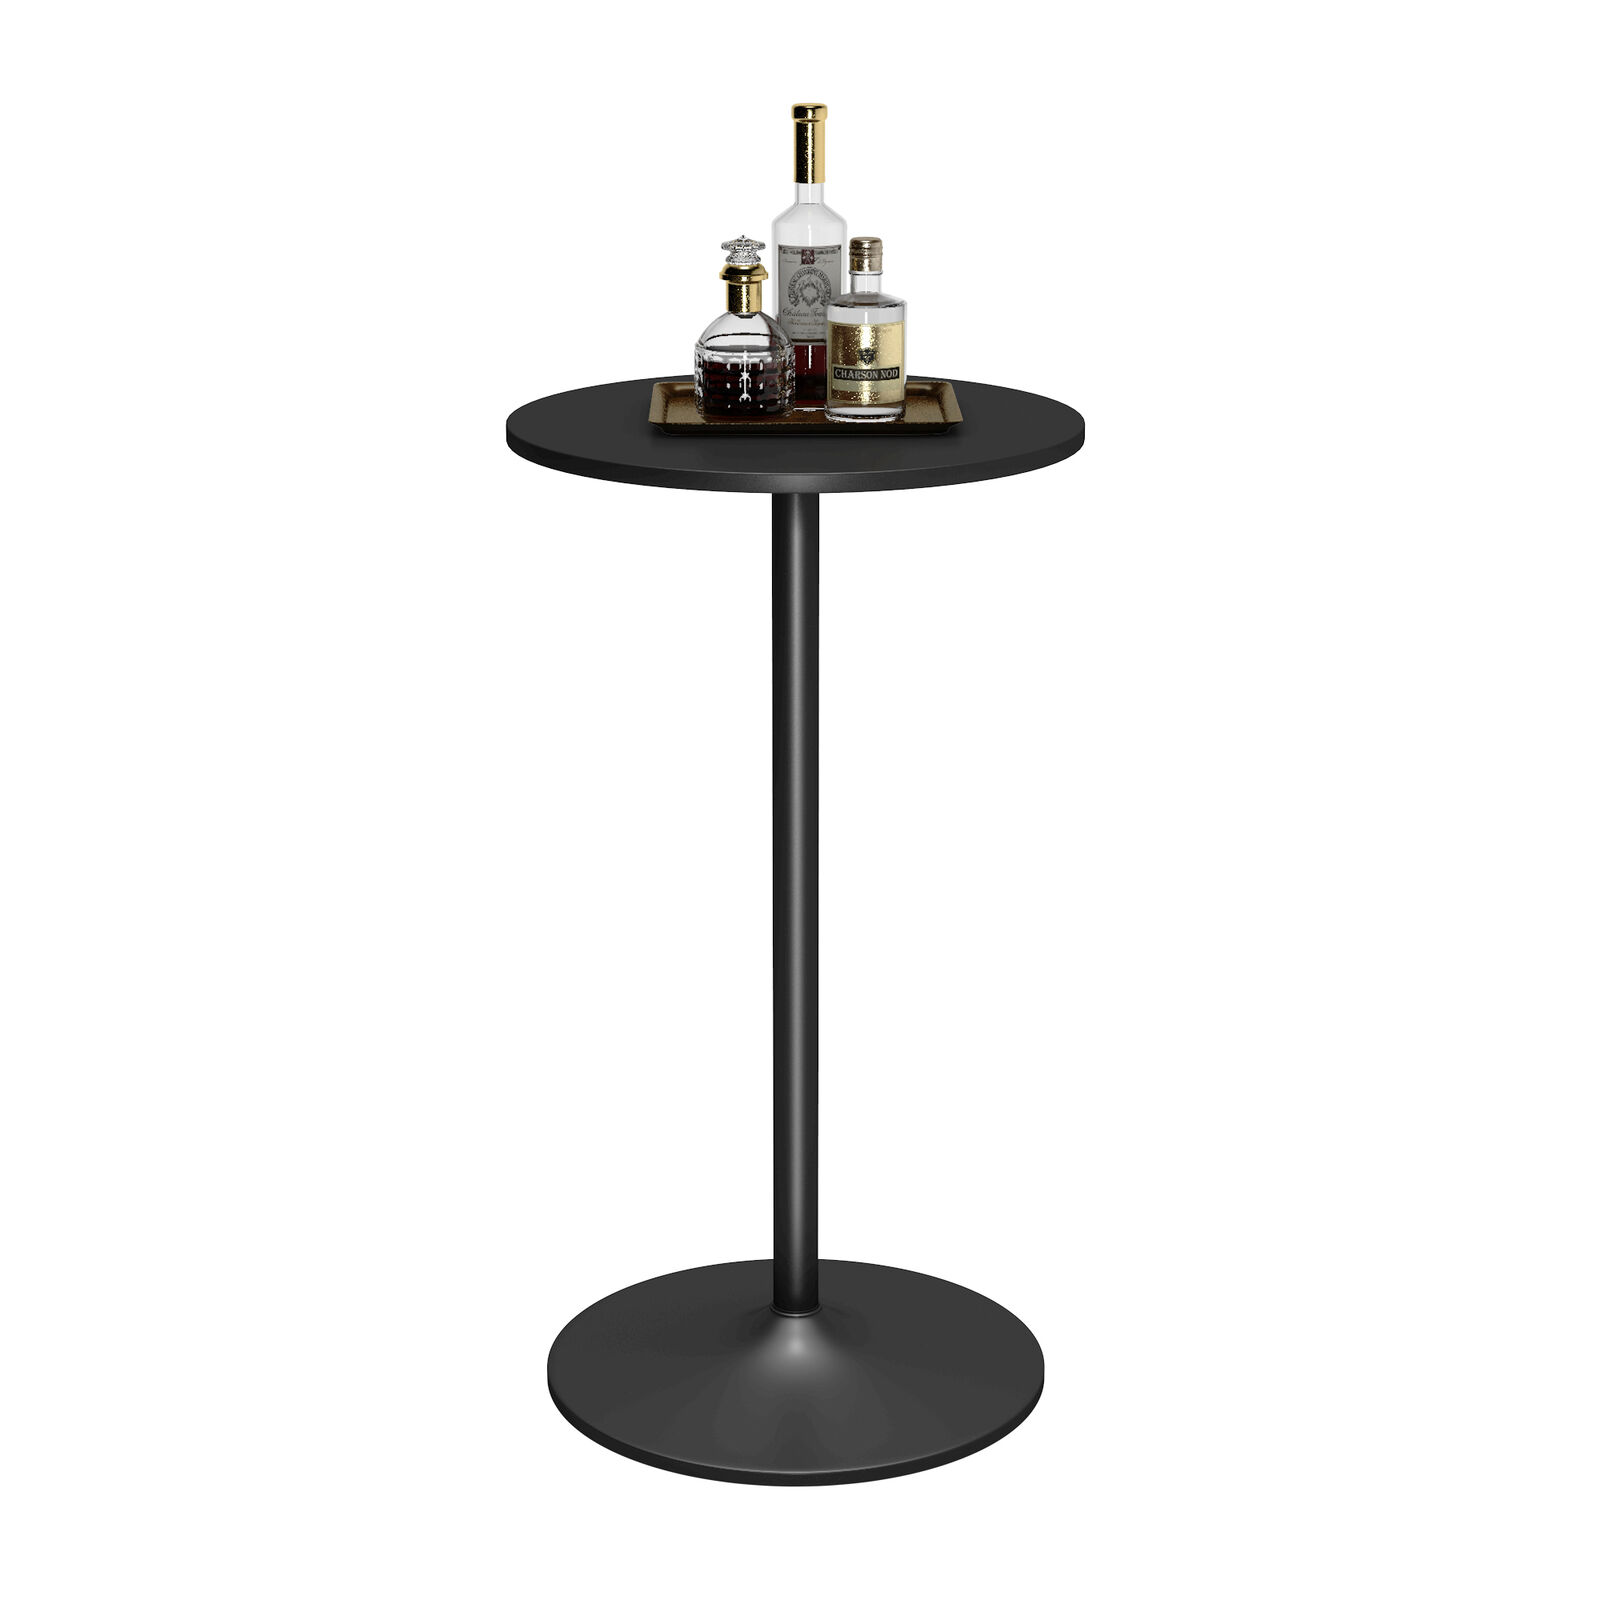 Costway 24'' Dia Round Bar Table Bistro Pub Counter Home Outdoor Indoor Kitchen Furniture